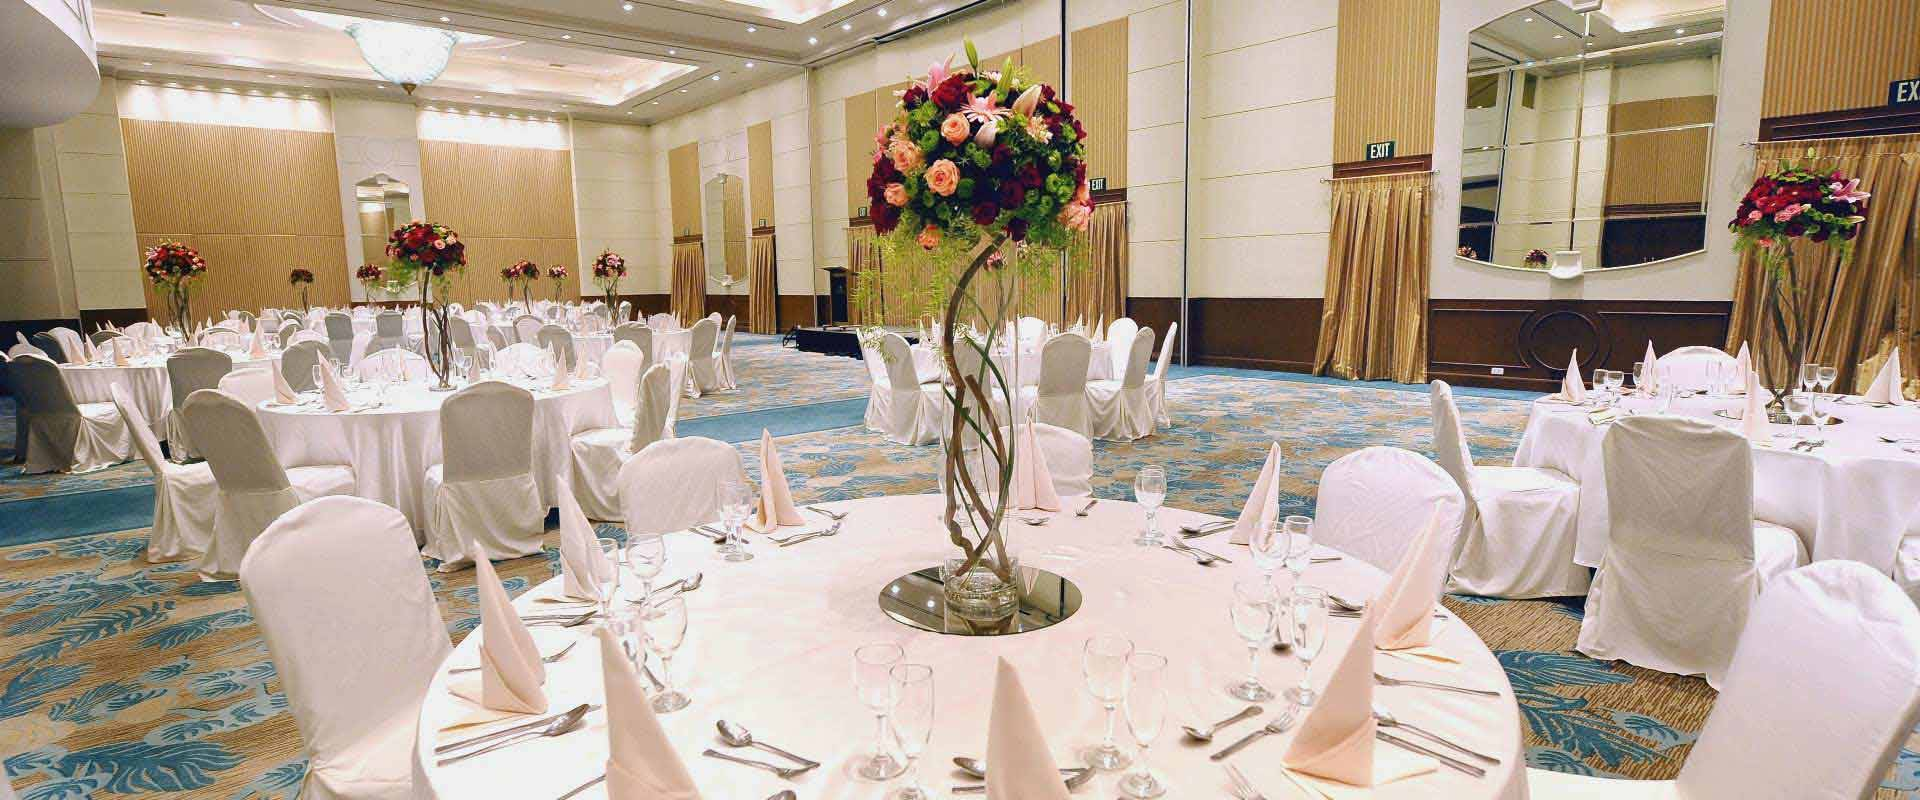 Palm Plaza Hotel Function Room